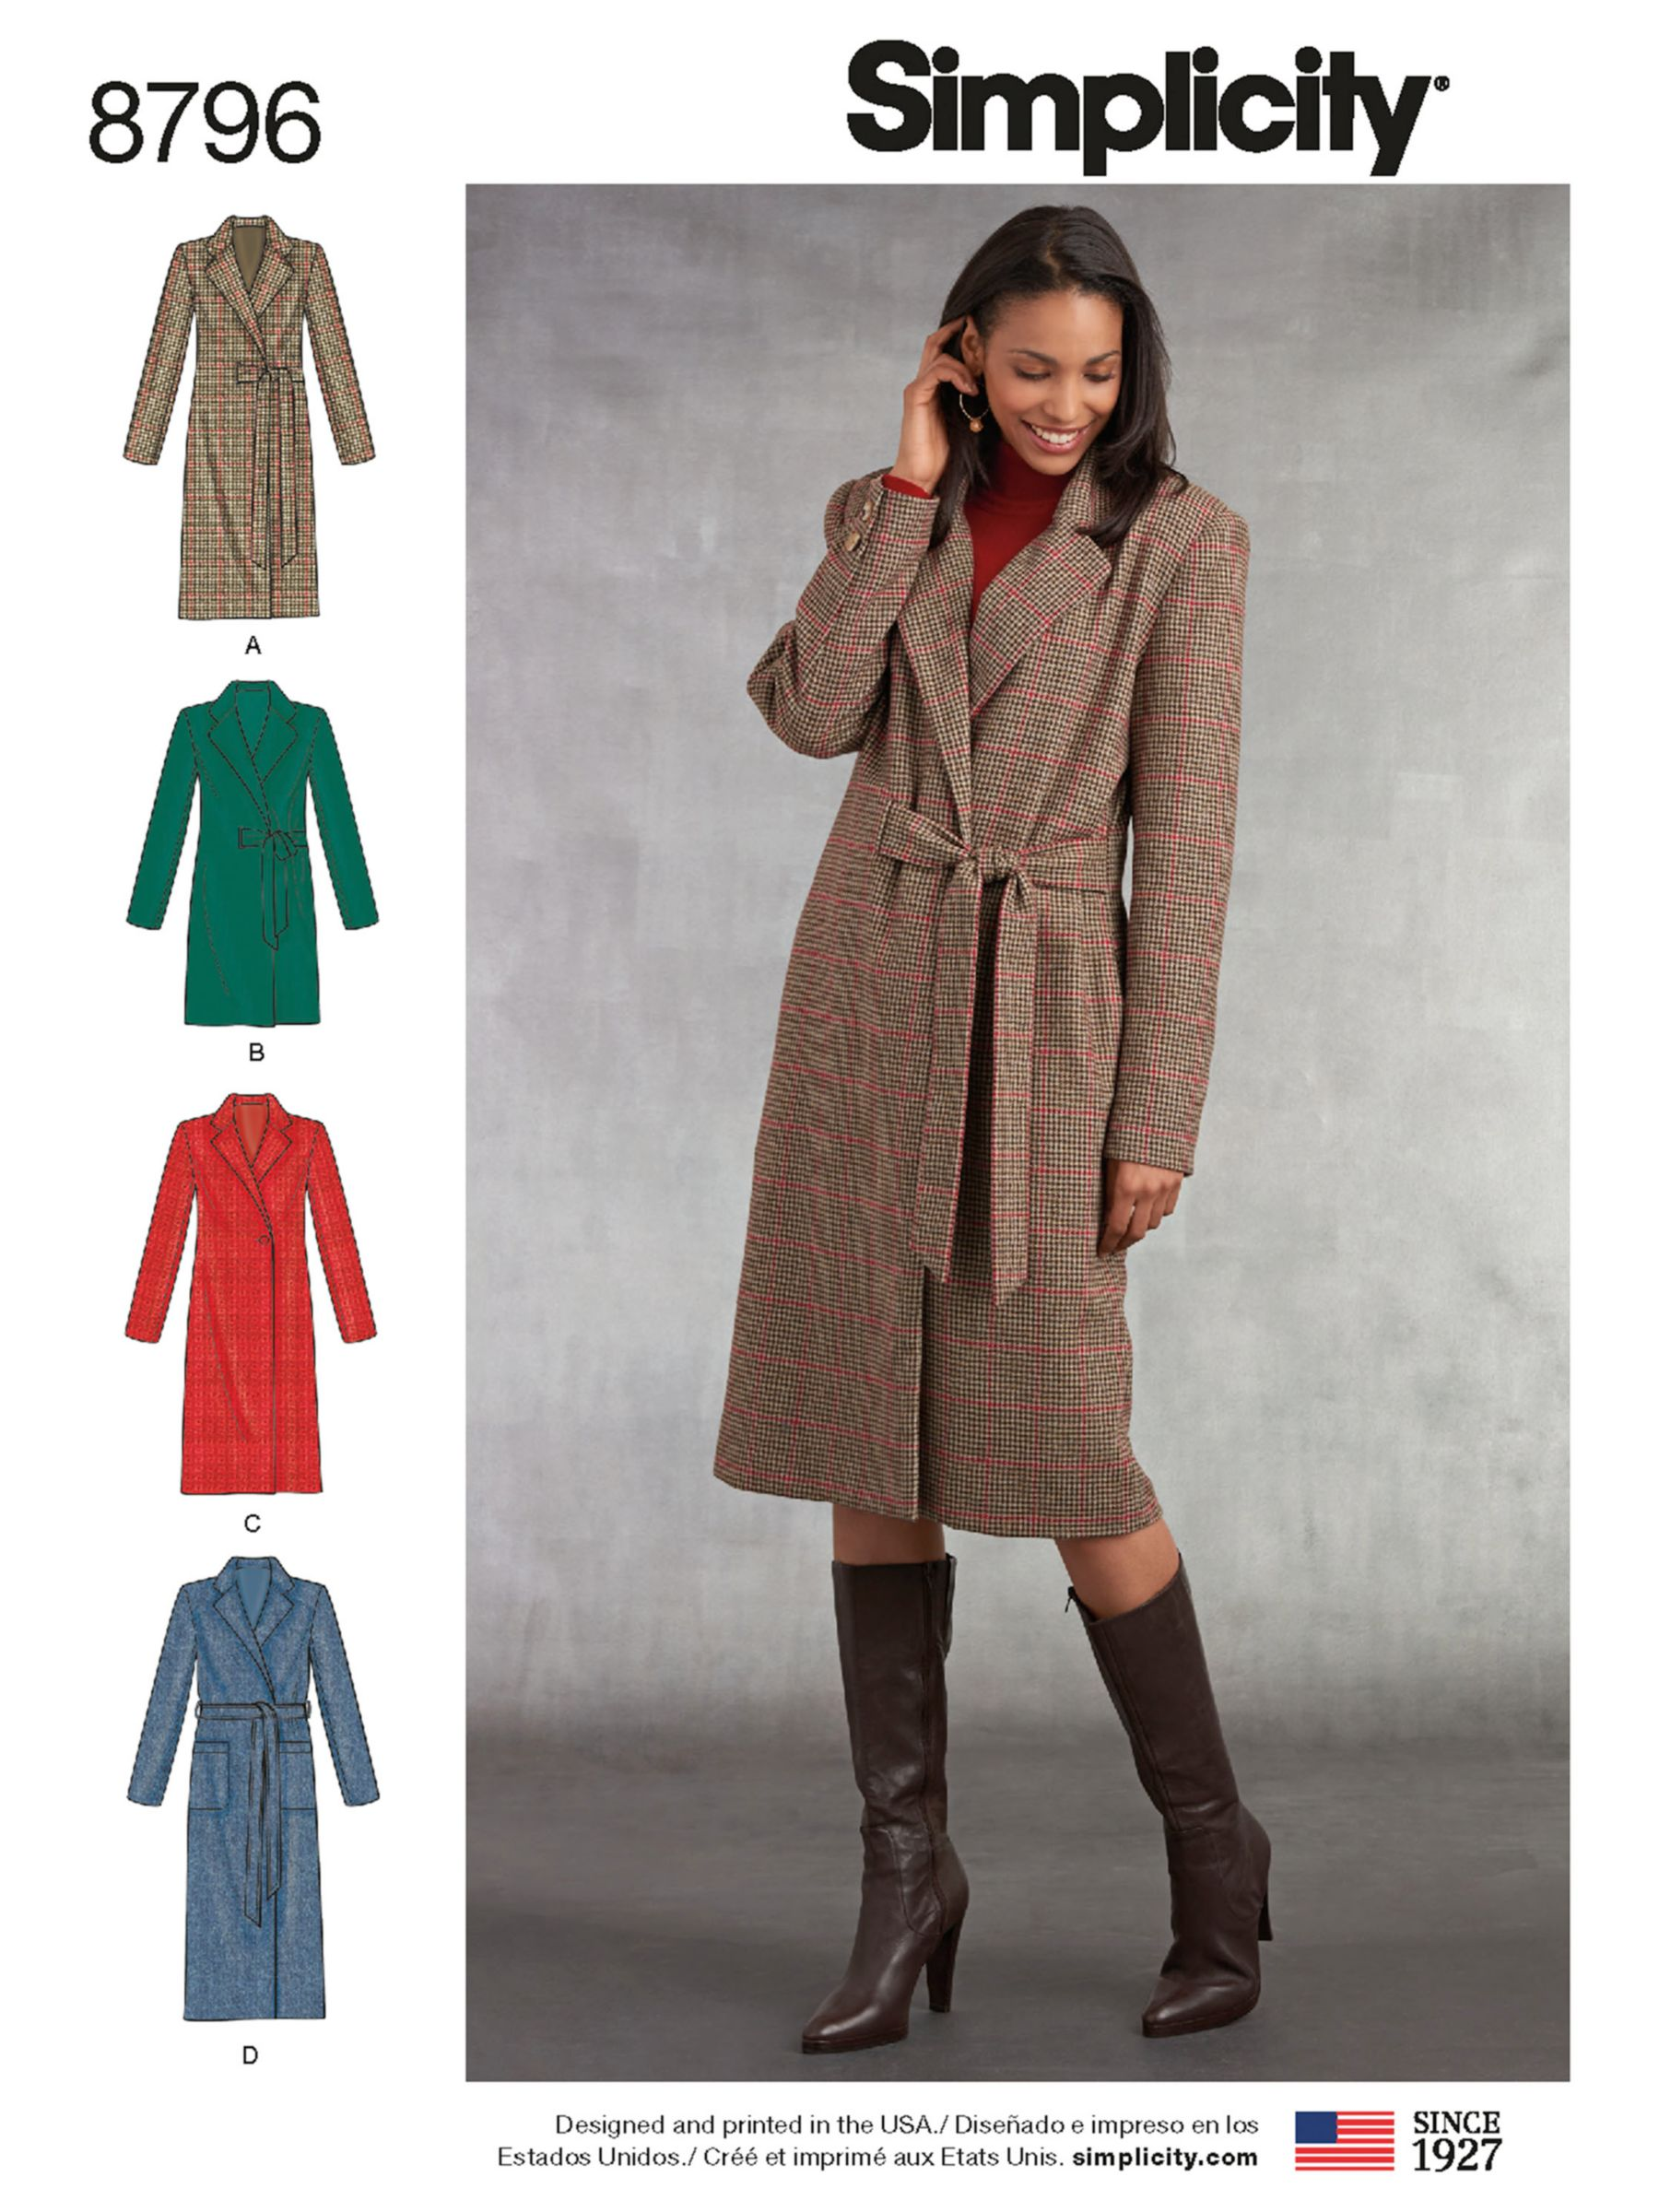 Simplicity Simplicity Women's Coat Sewing Pattern, 8796